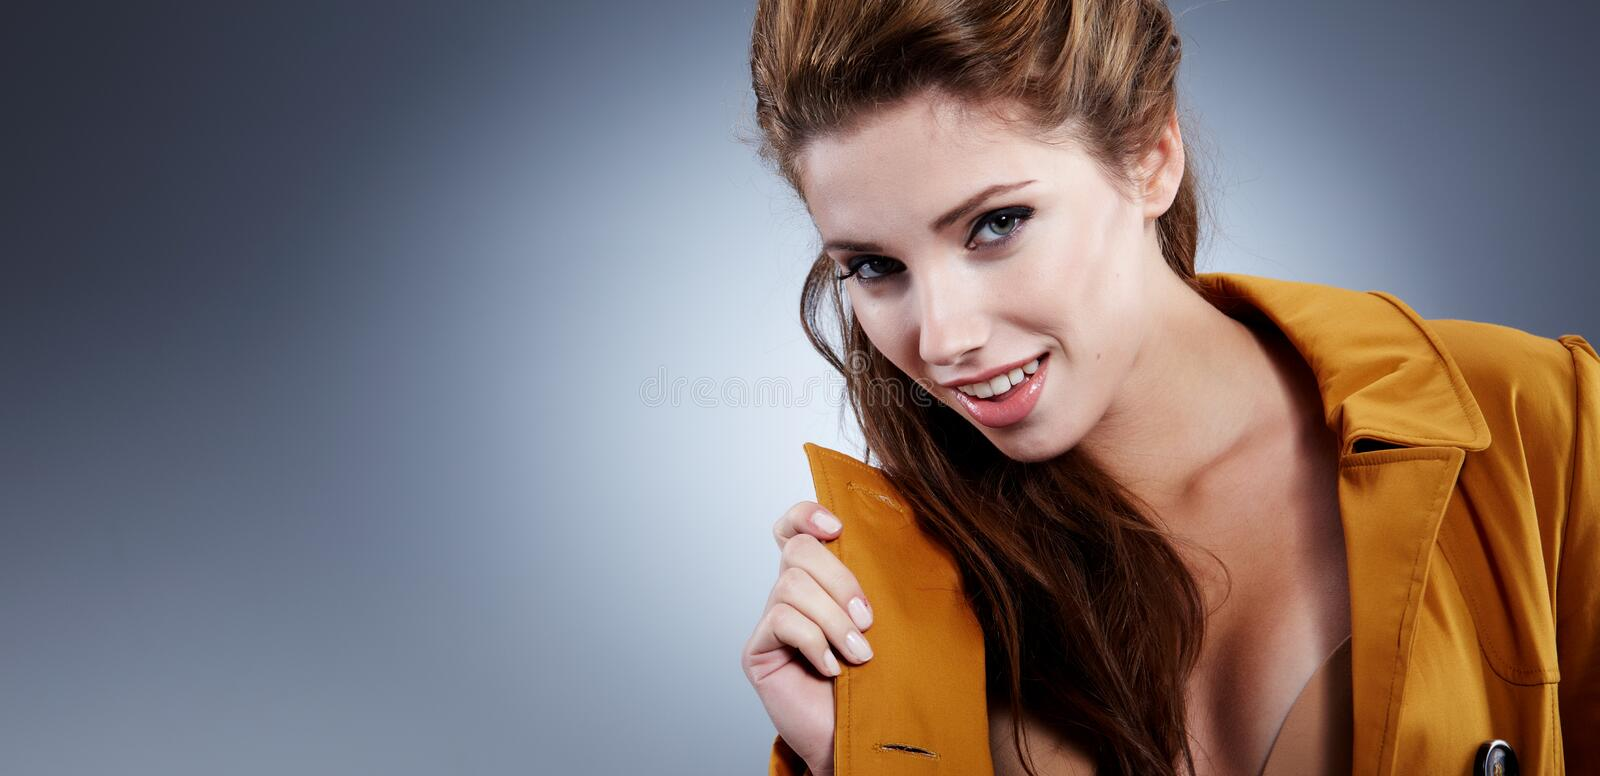 Download Portrait Of A Cute Woman Royalty Free Stock Image - Image: 21768836